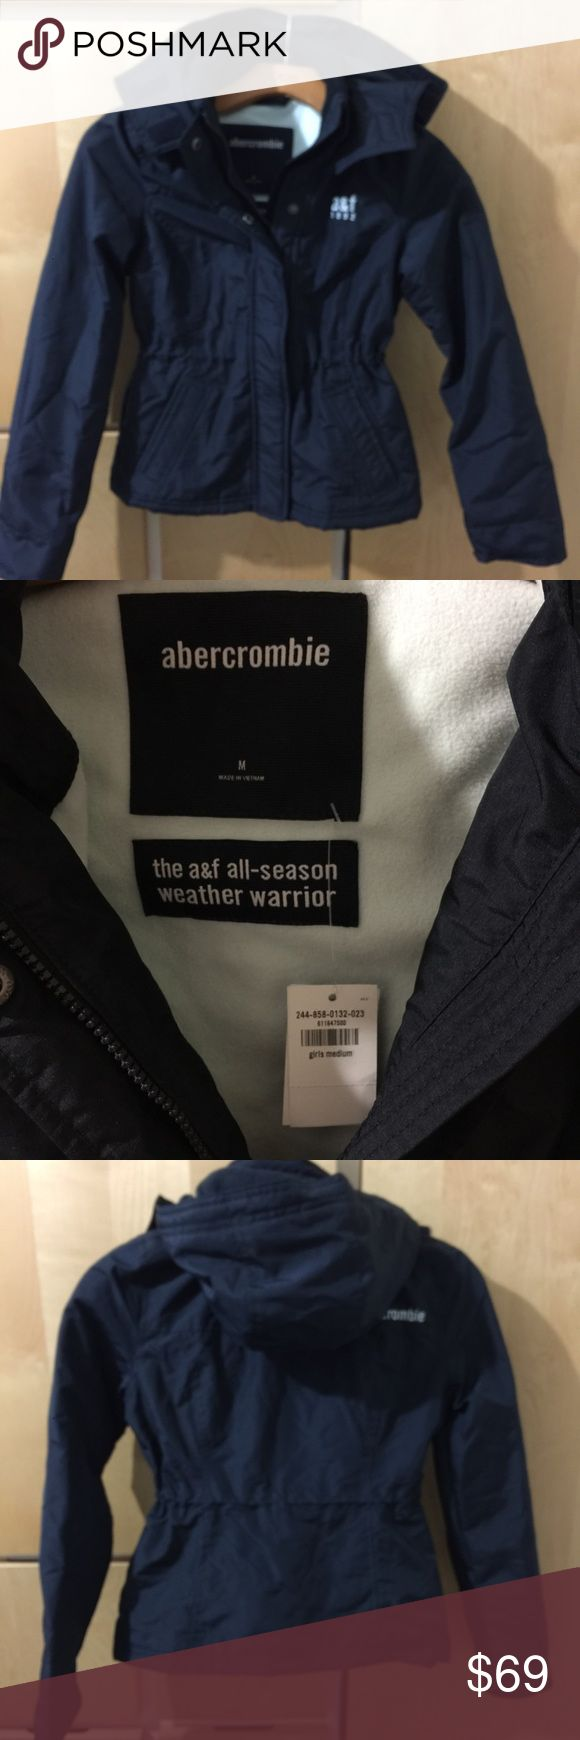 NWT Abercrombie Girl Coat Brand new with tag. Very warm coat. Fit 8- 10 years old. Dark navy blue color abercrombie kids Jackets & Coats